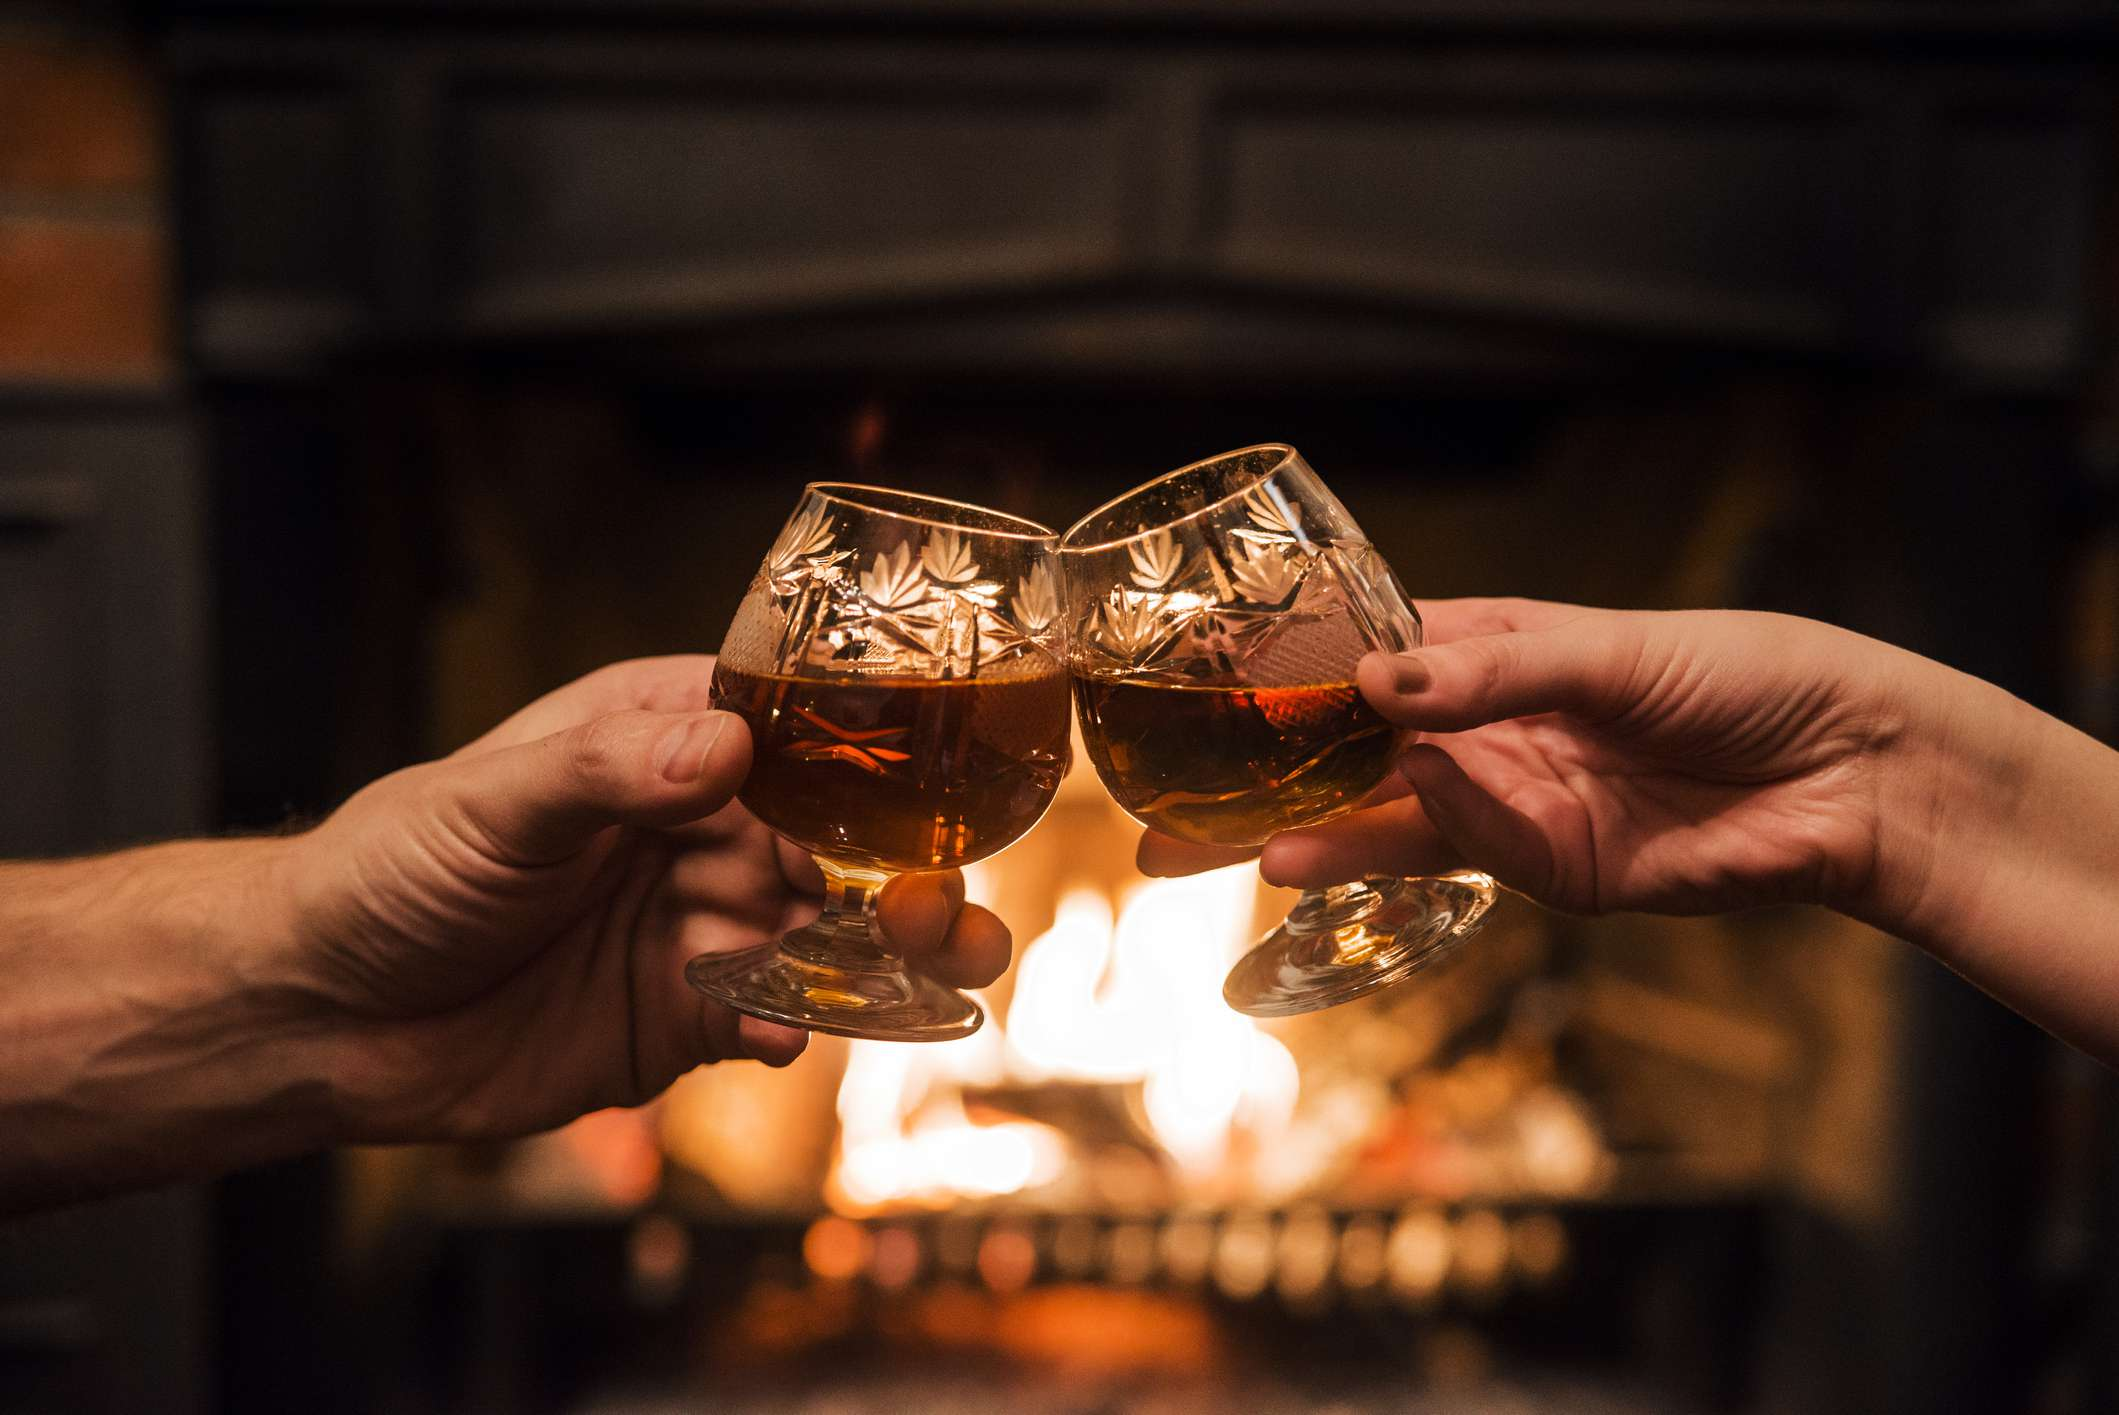 Toasting in front of a fire